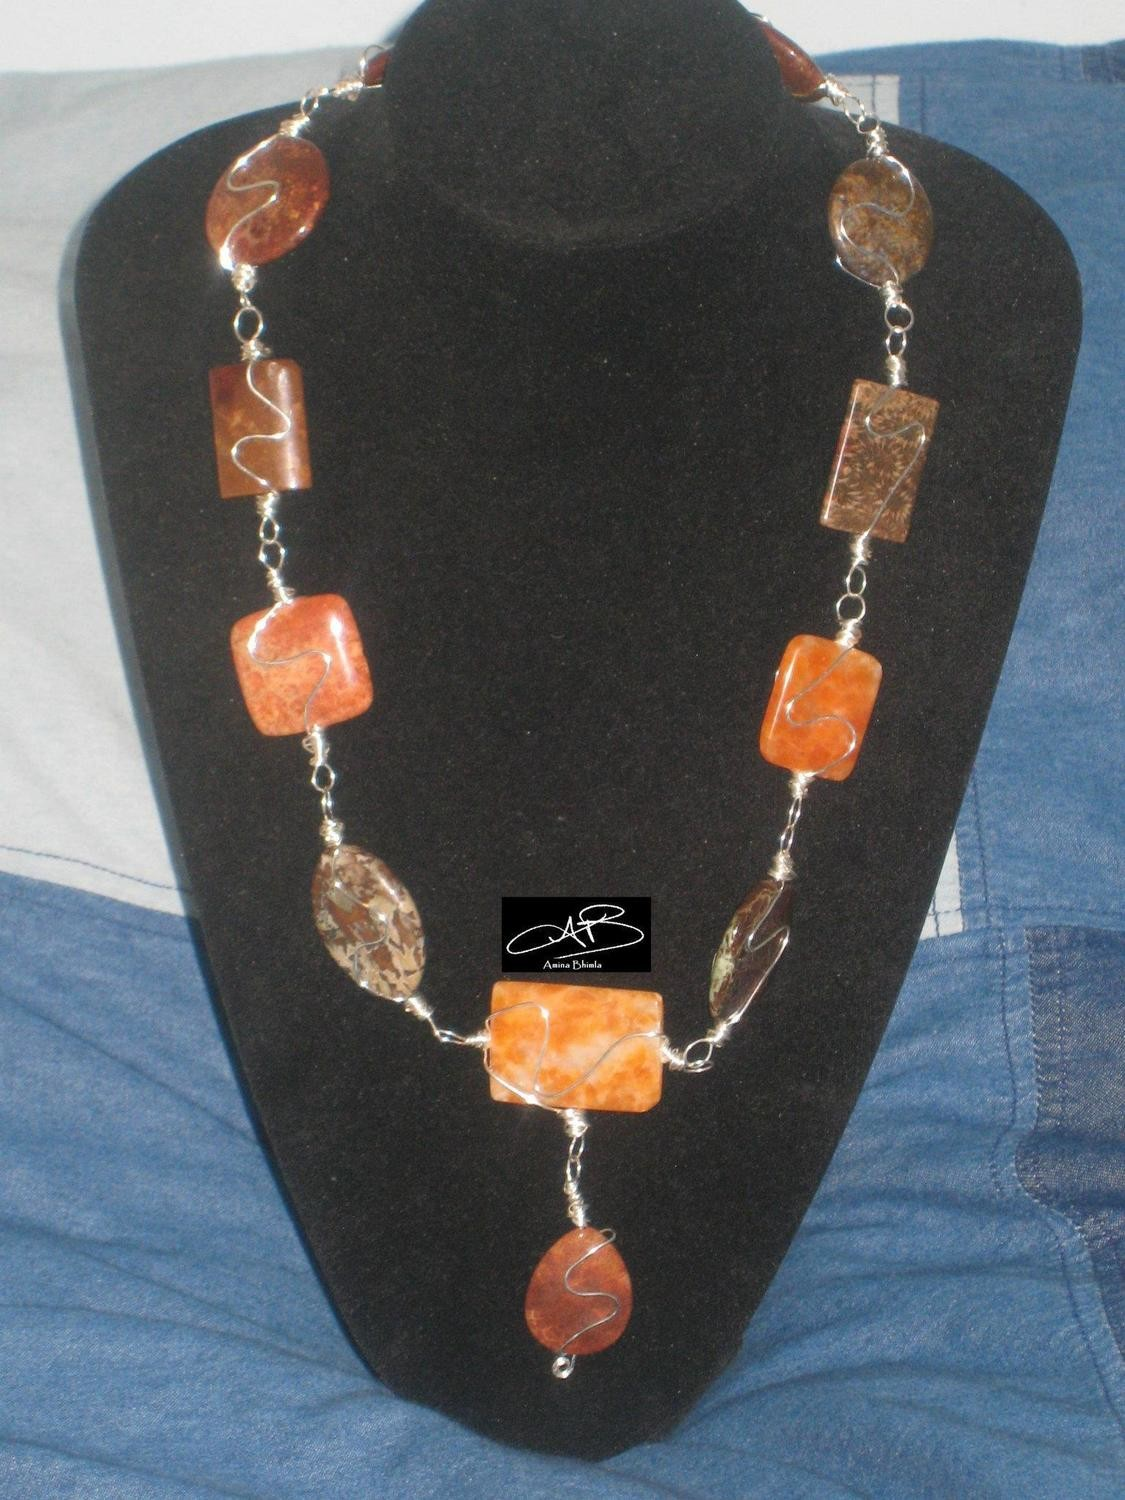 WIRED STONE NECKLACE/Collier de pierres filaires